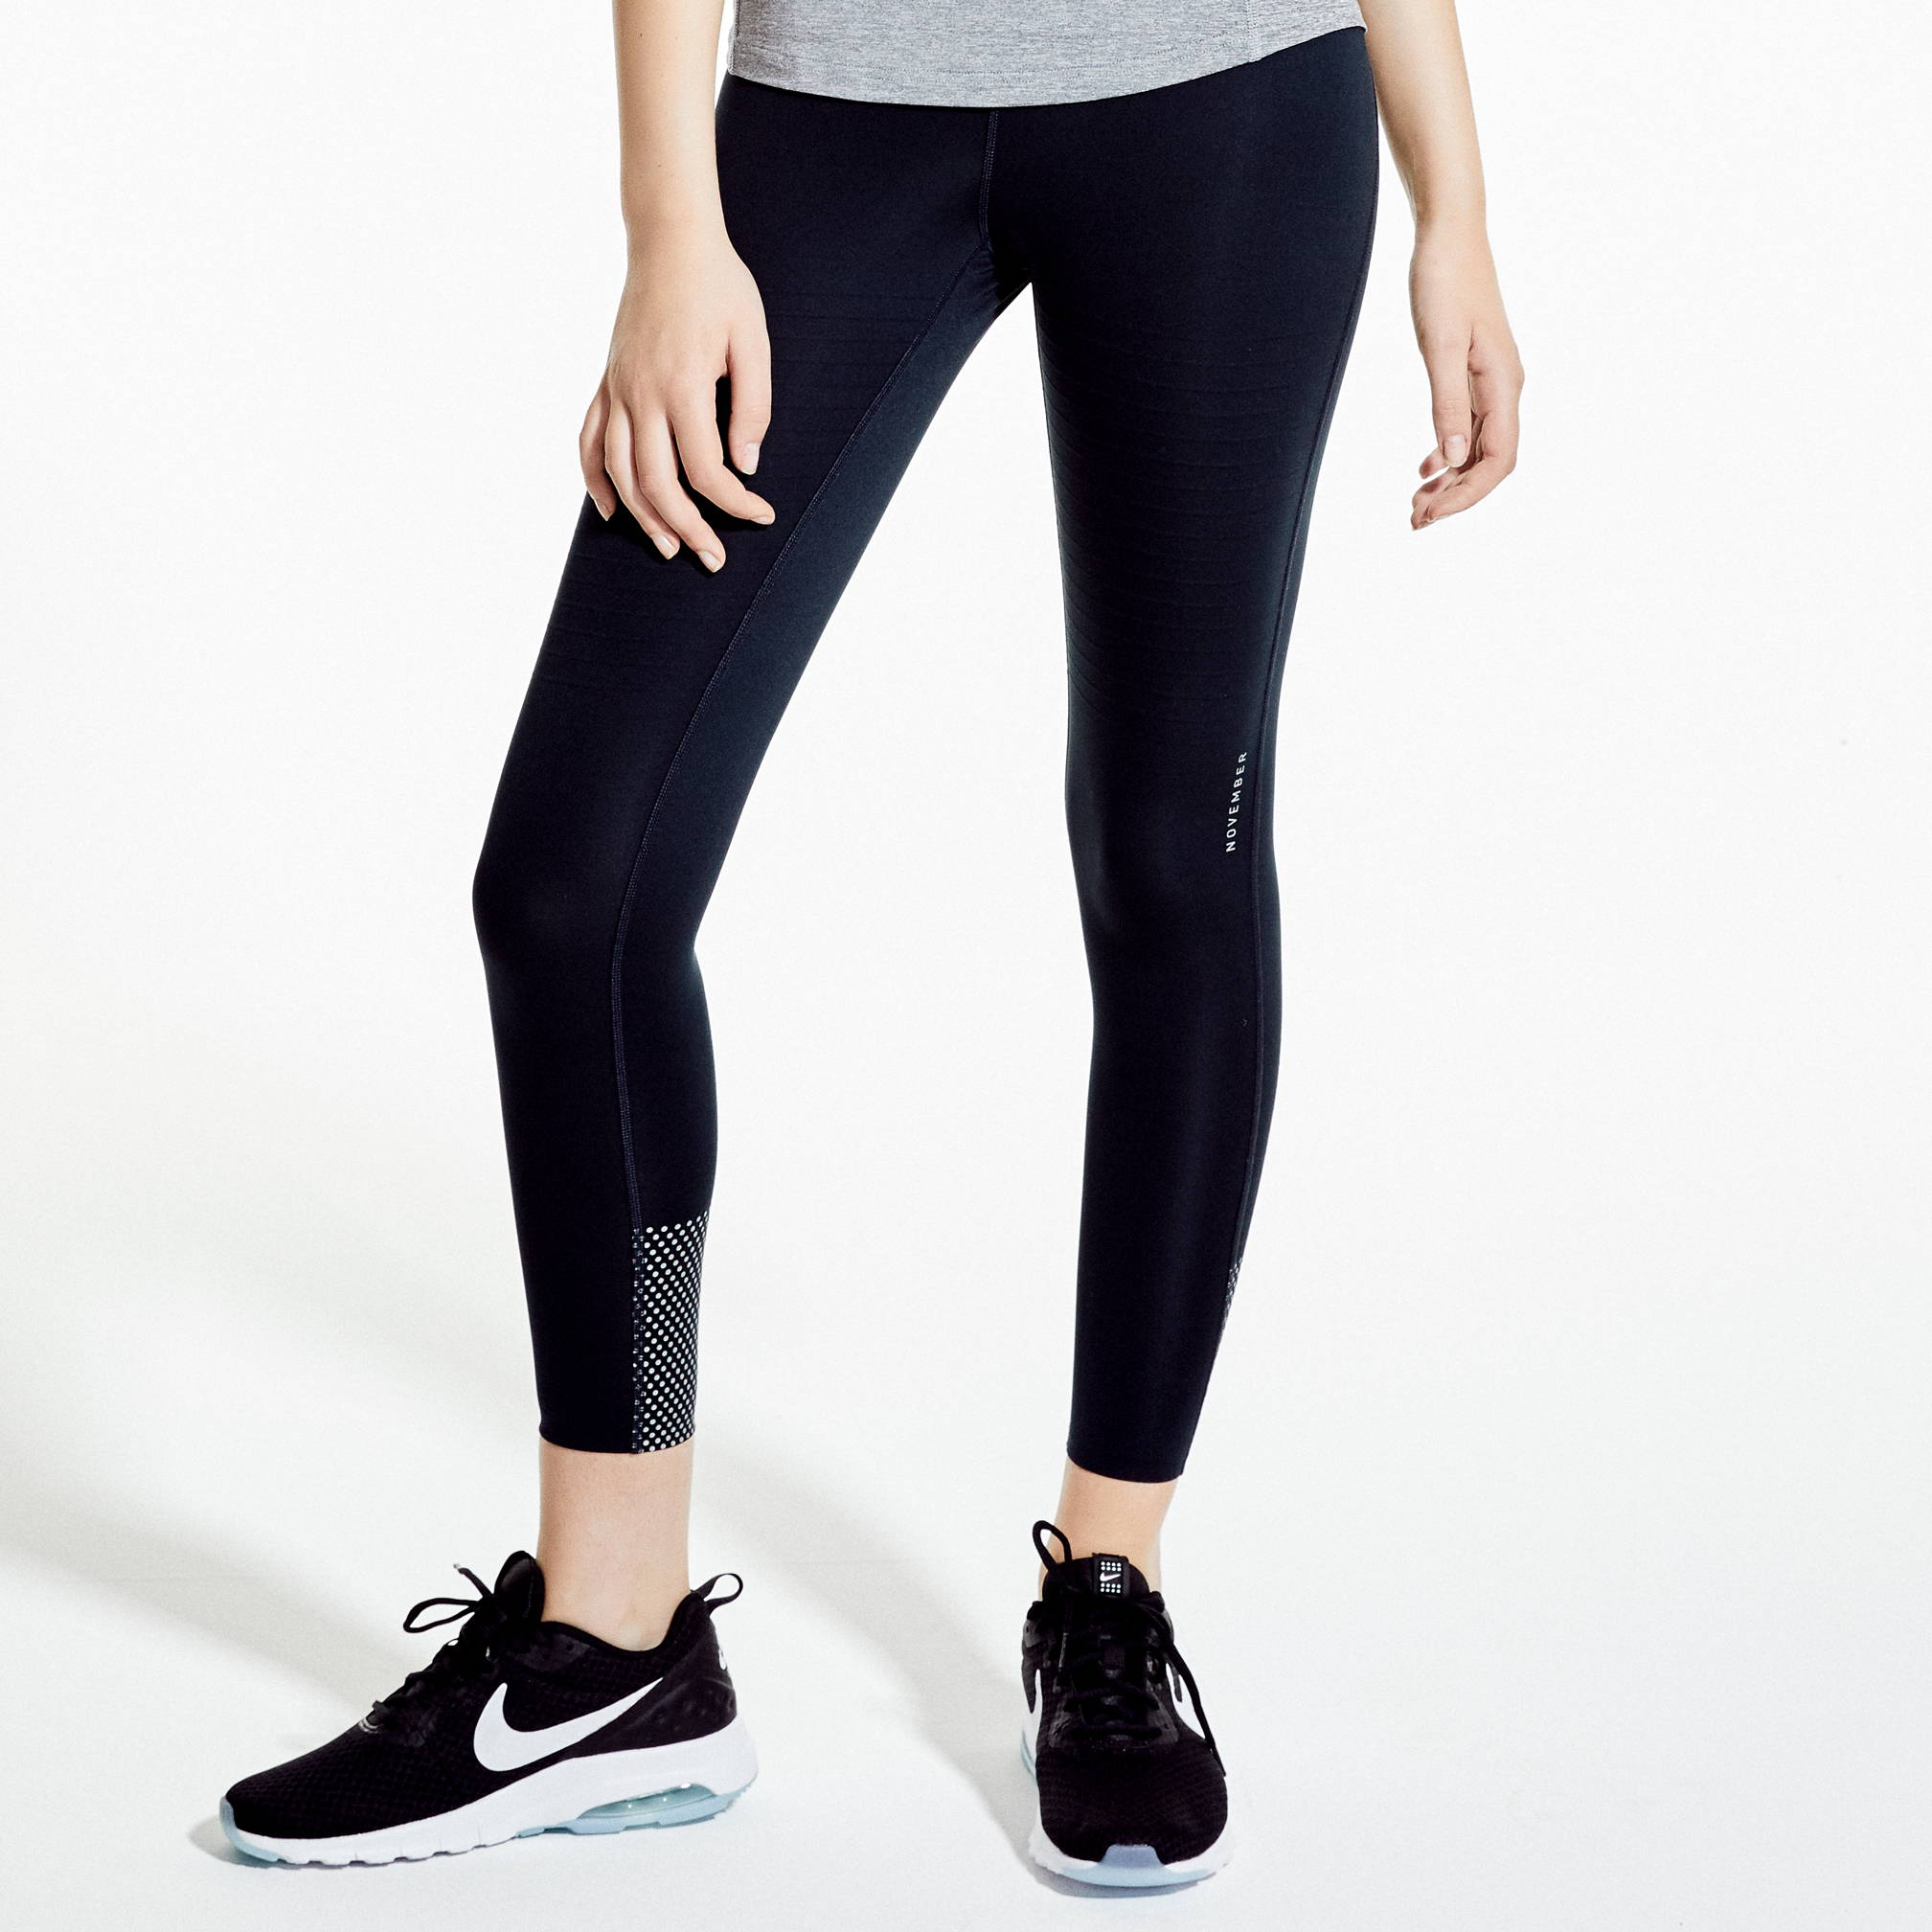 Womens-Reflective Silver-Performance-Tight